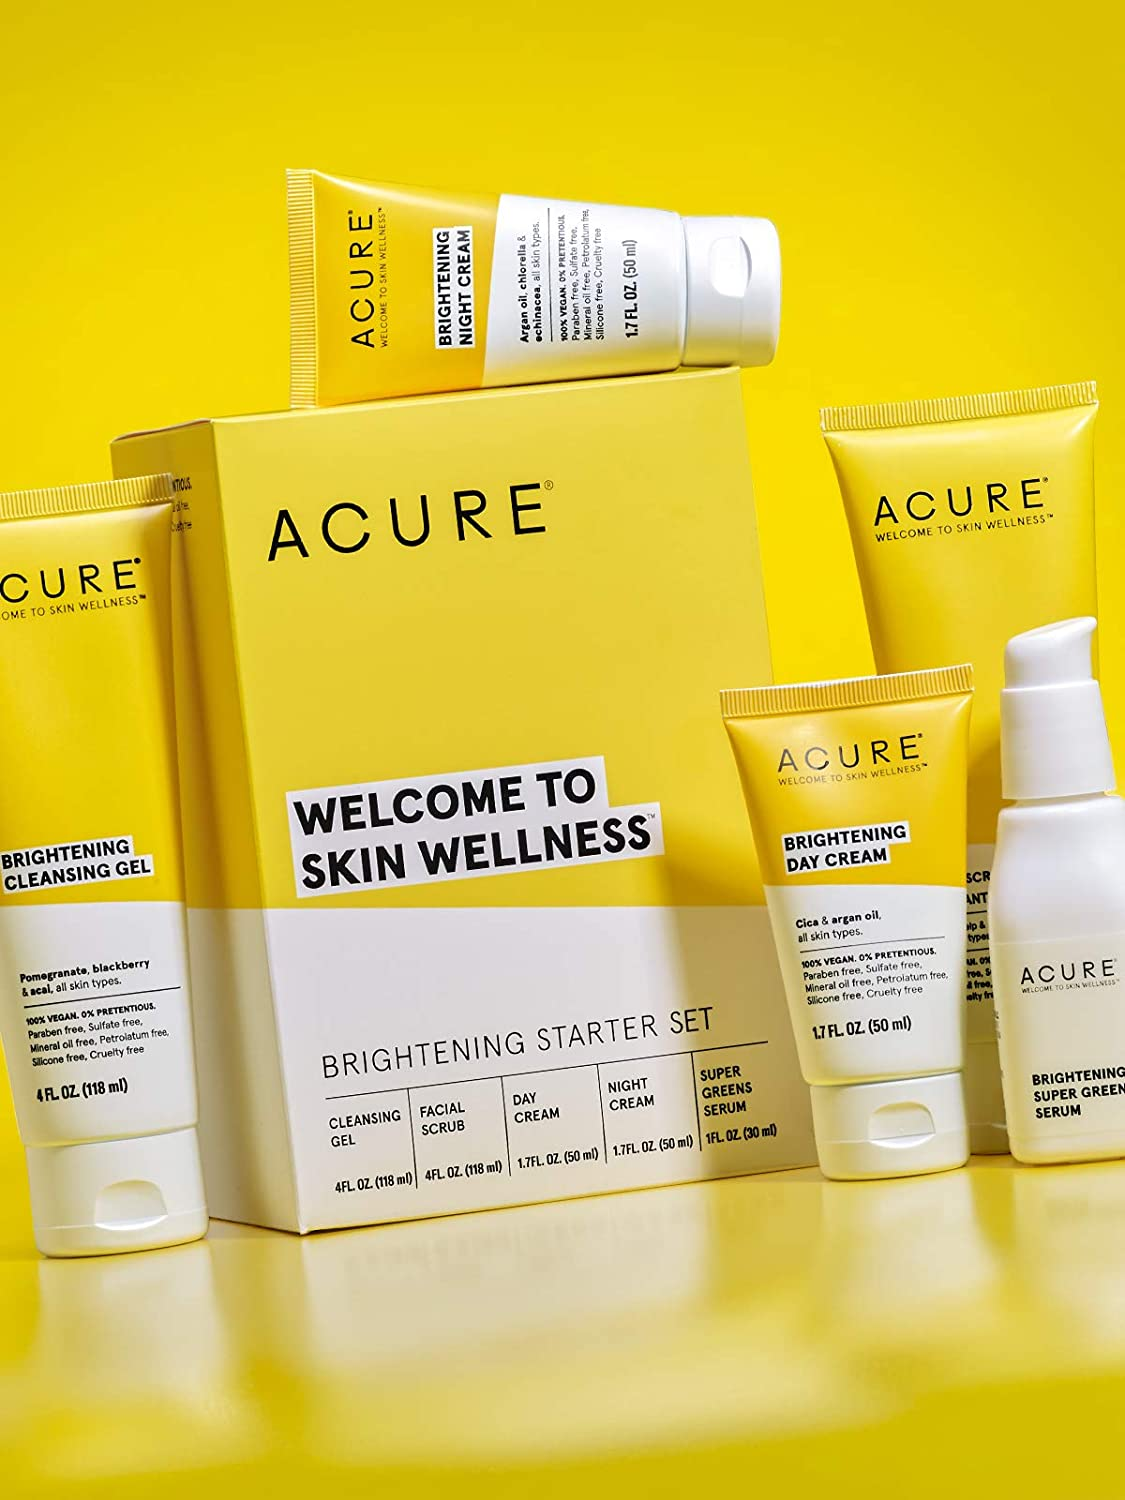 Acure Brightening Starter Kit - 100% Vegan & For A Brighter Appearance, Includes Facial Scrub, Super Greens Serum, Cleansing Gel, Day Cream & Night Cream, 5 Count